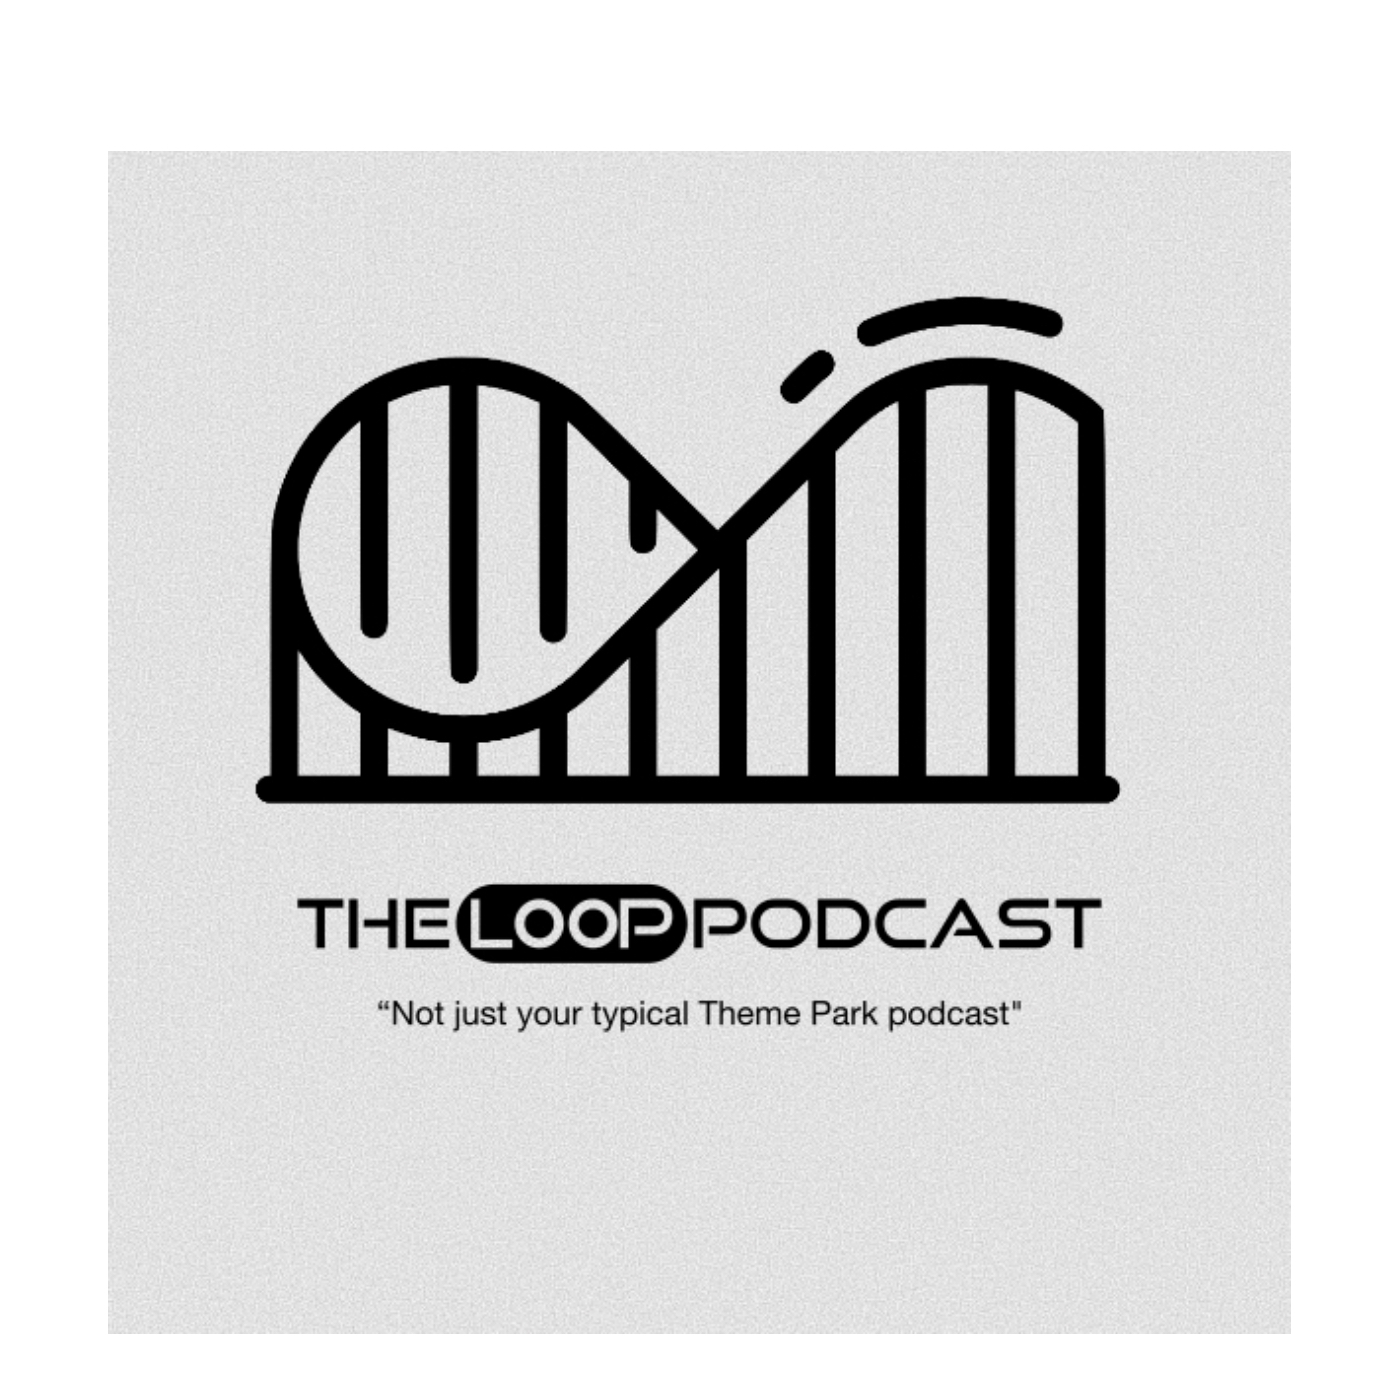 thelooppodcast